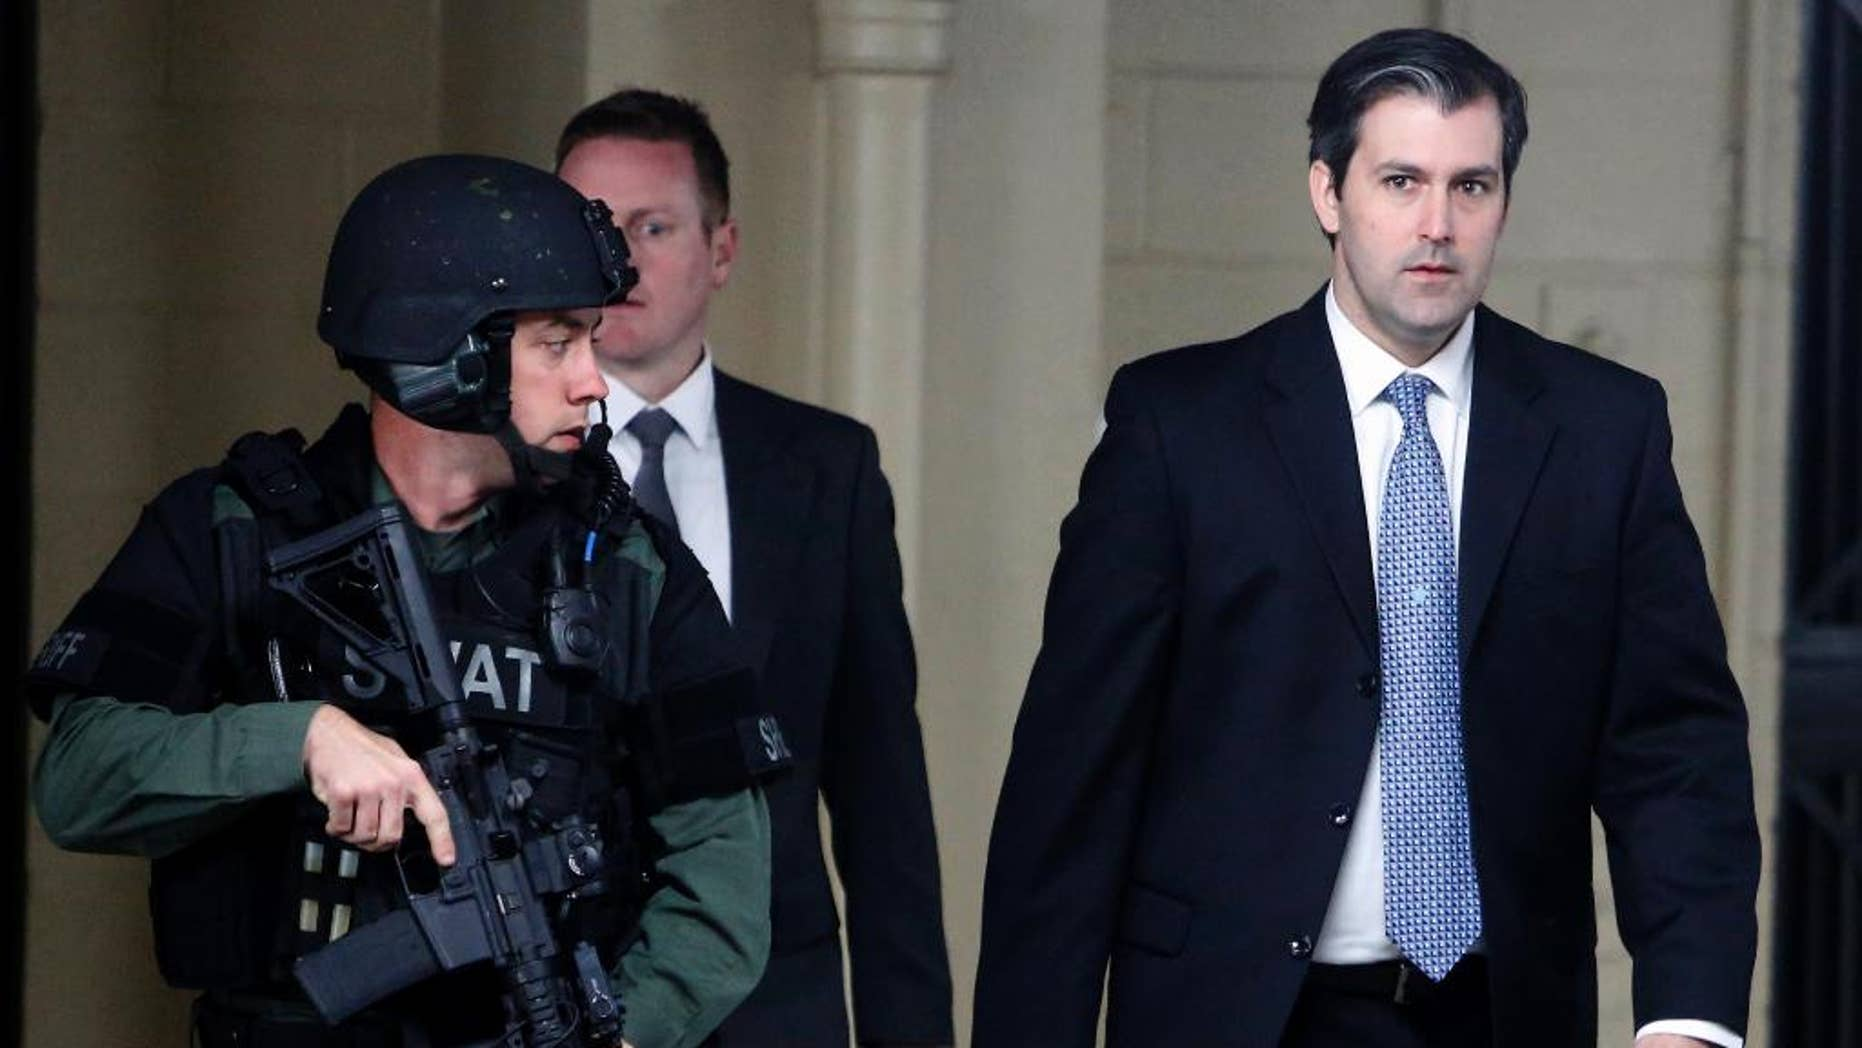 Michael Slager, at right, walks from the Charleston County Courthouse under the protection from the Charleston County Sheriff's Department after a mistrial was declared for his trial Monday Dec. 5, 2016, in Charleston, S.C. Former patrolman, Slager, was charged with murder in the April 4, 2015, shooting death of 50-year-old Walter Scott. (AP Photo/Mic Smith)